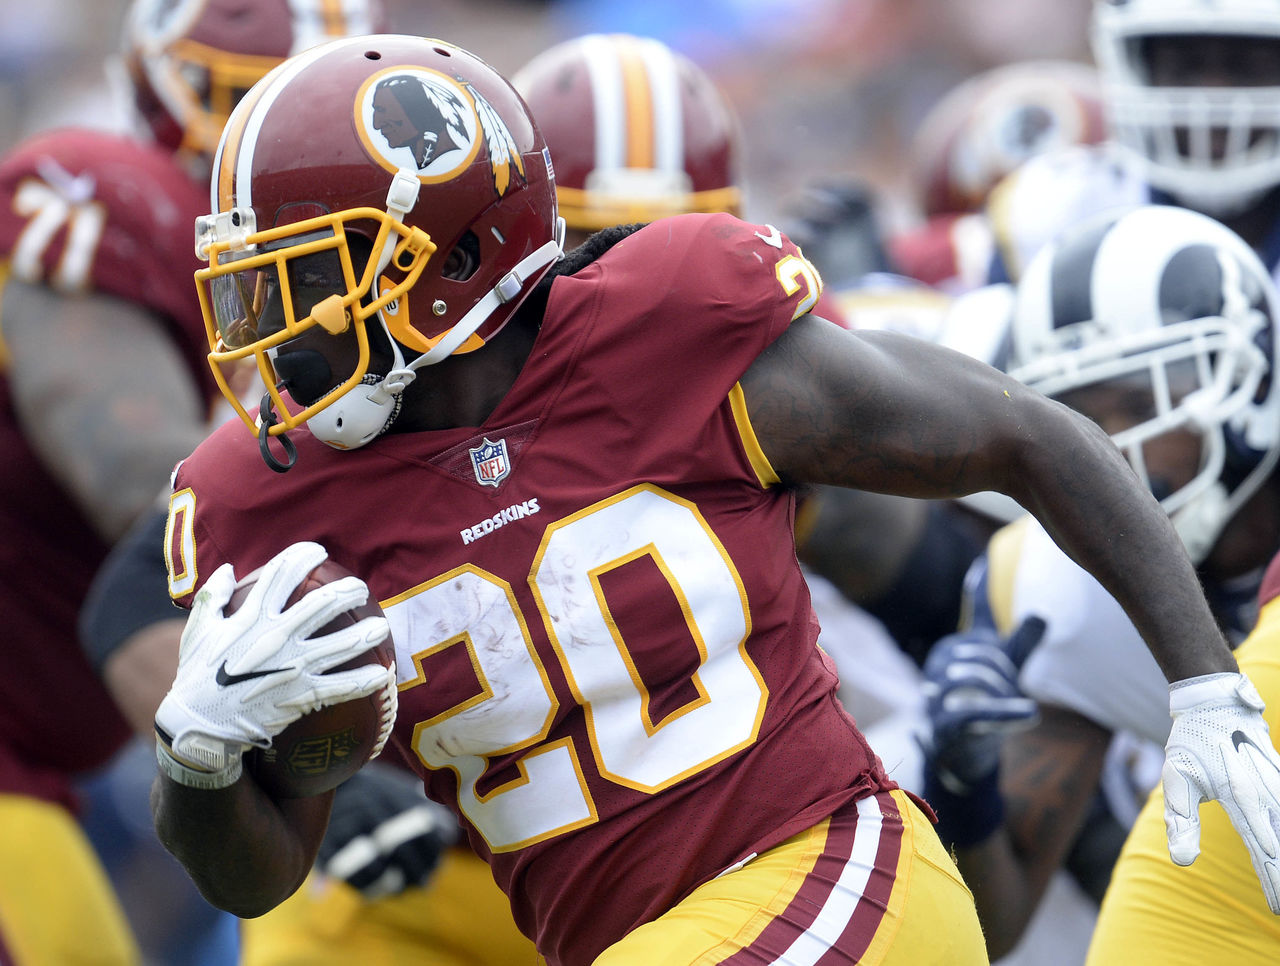 Cropped_2017-09-17t220533z_38002359_nocid_rtrmadp_3_nfl-washington-redskins-at-los-angeles-rams